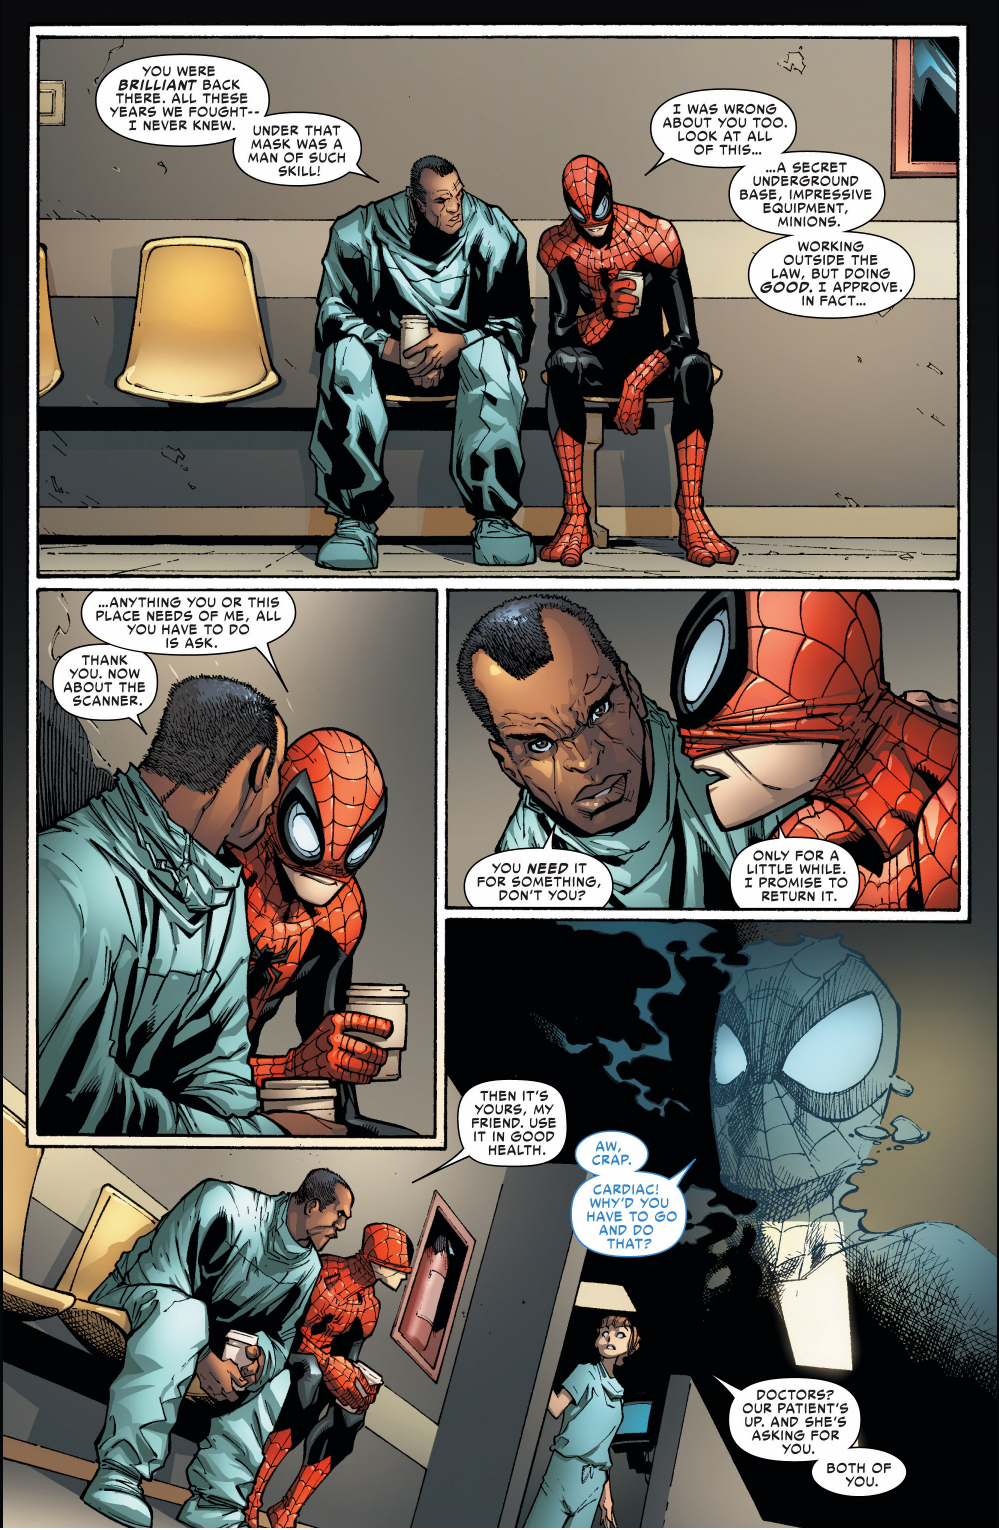 superior spider-man performs surgery